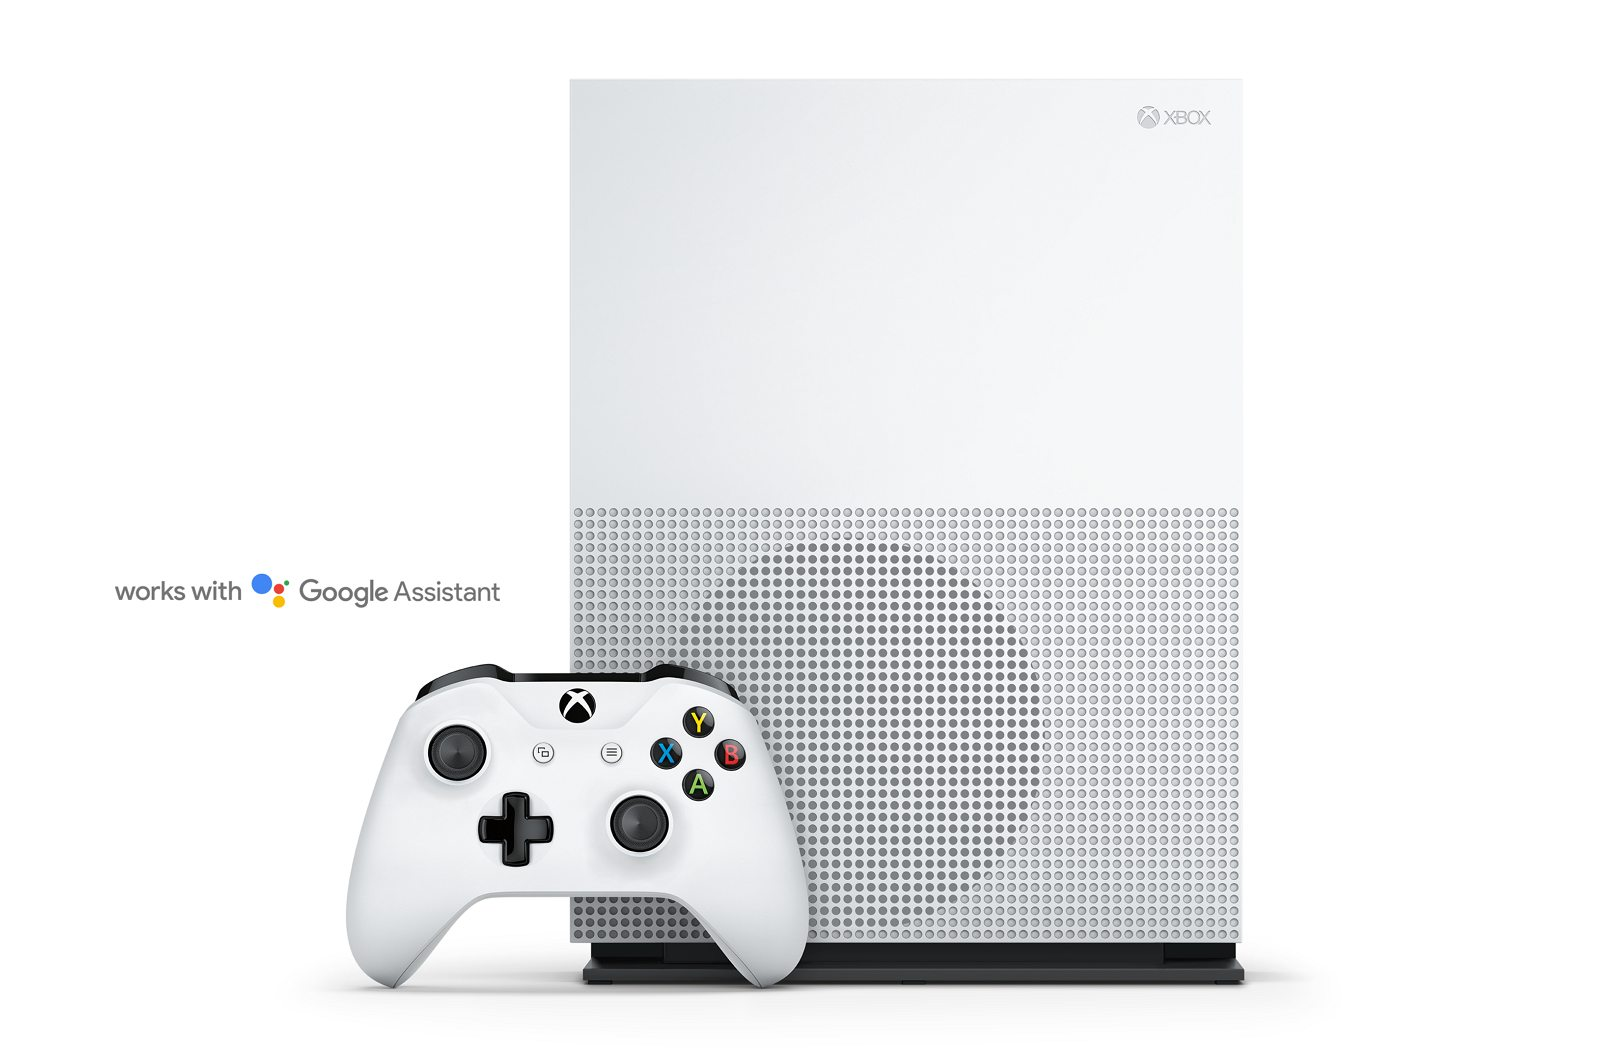 Xbox One with Google Assistant (source: Microsoft)